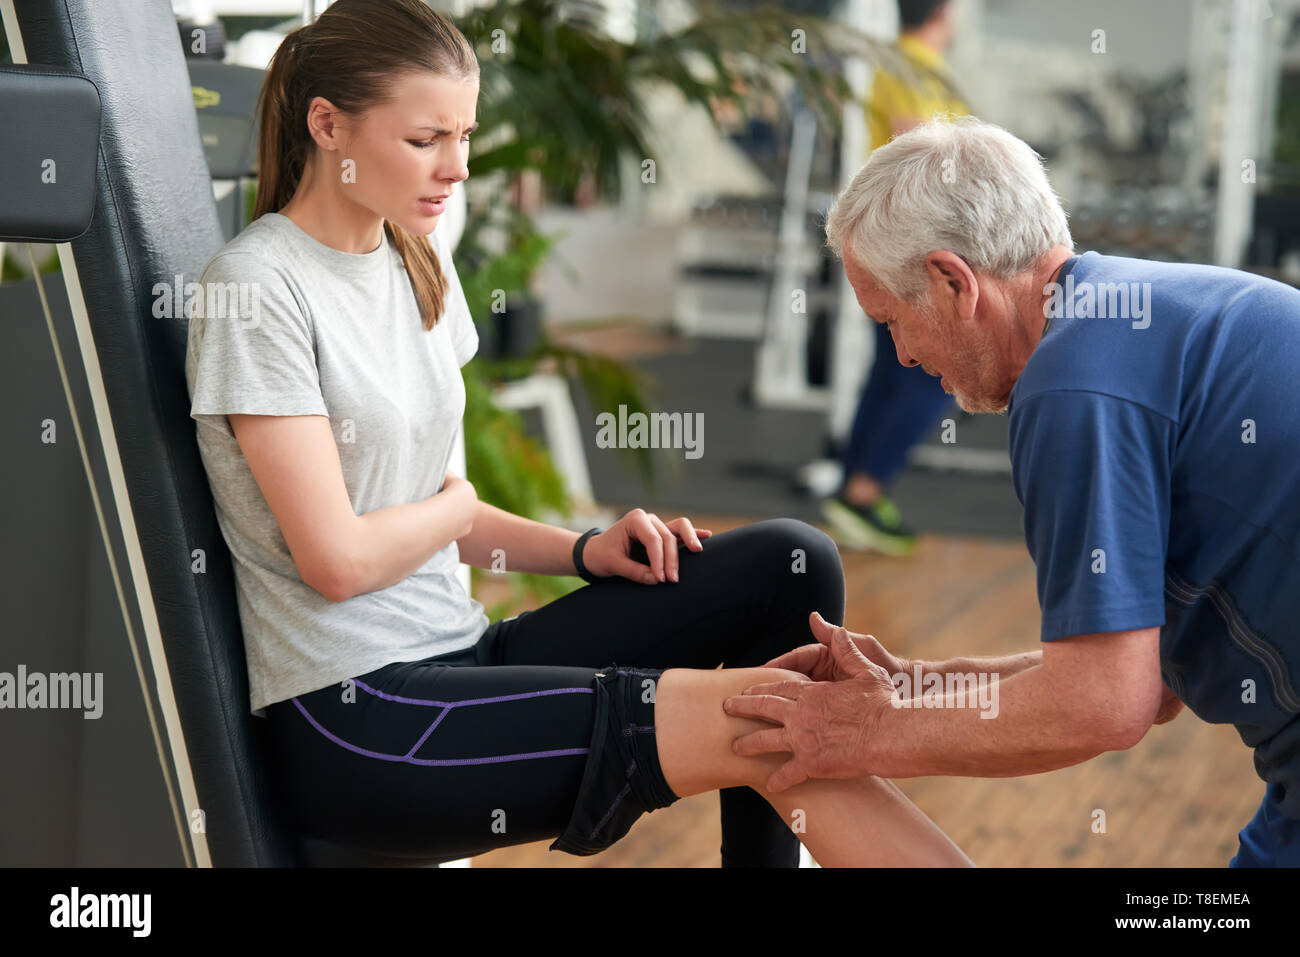 Athletic injured woman at gym. Senior male fitness instructor examining injured leg and knee of woman at fitness club. Muscle soreness after workout. - Stock Image